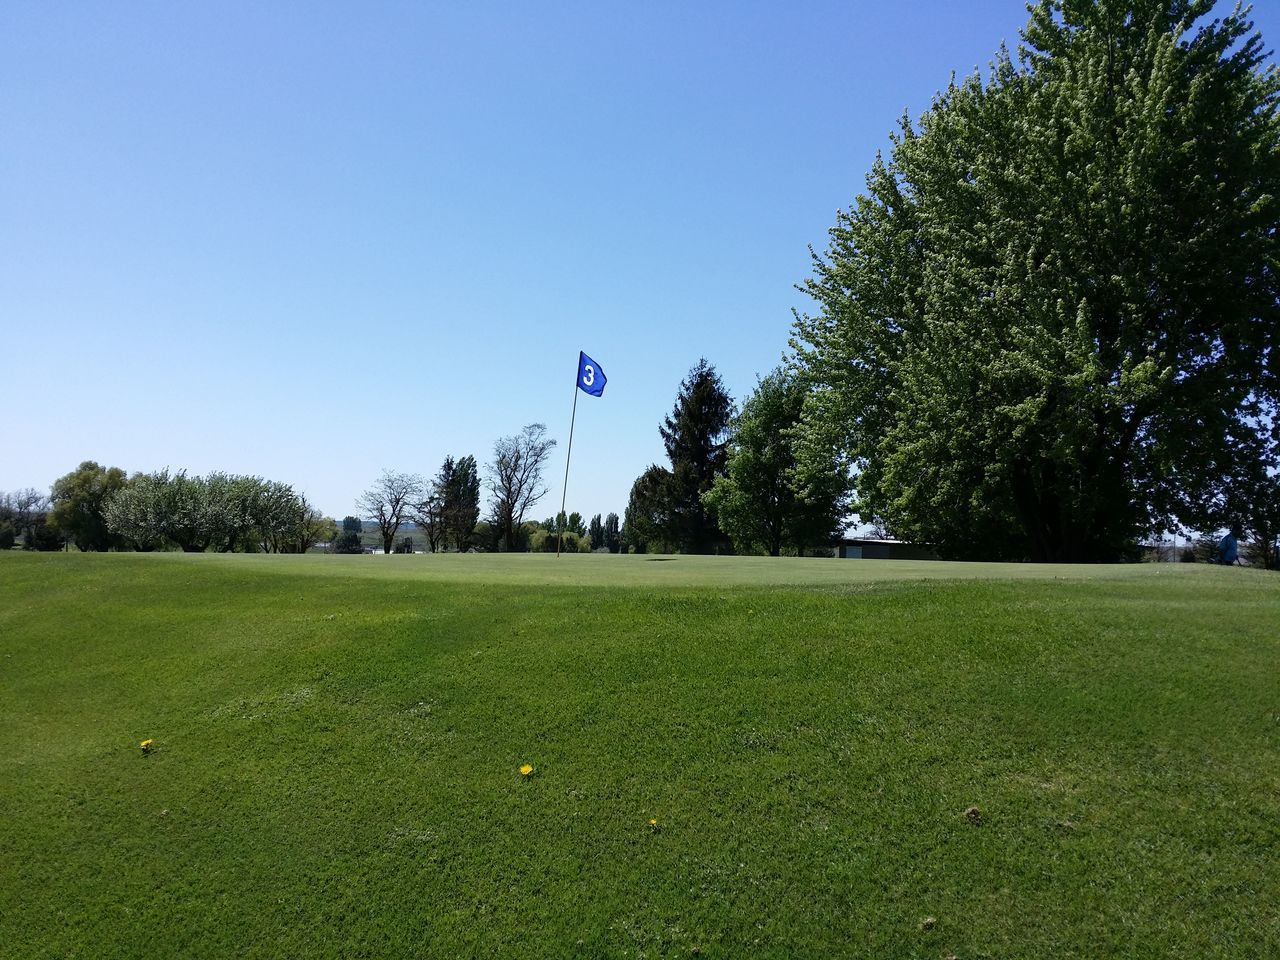 tree, flag, grass, green color, clear sky, outdoors, sport, golf, day, patriotism, green - golf course, no people, blue, growth, golf course, nature, playing field, beauty in nature, sky